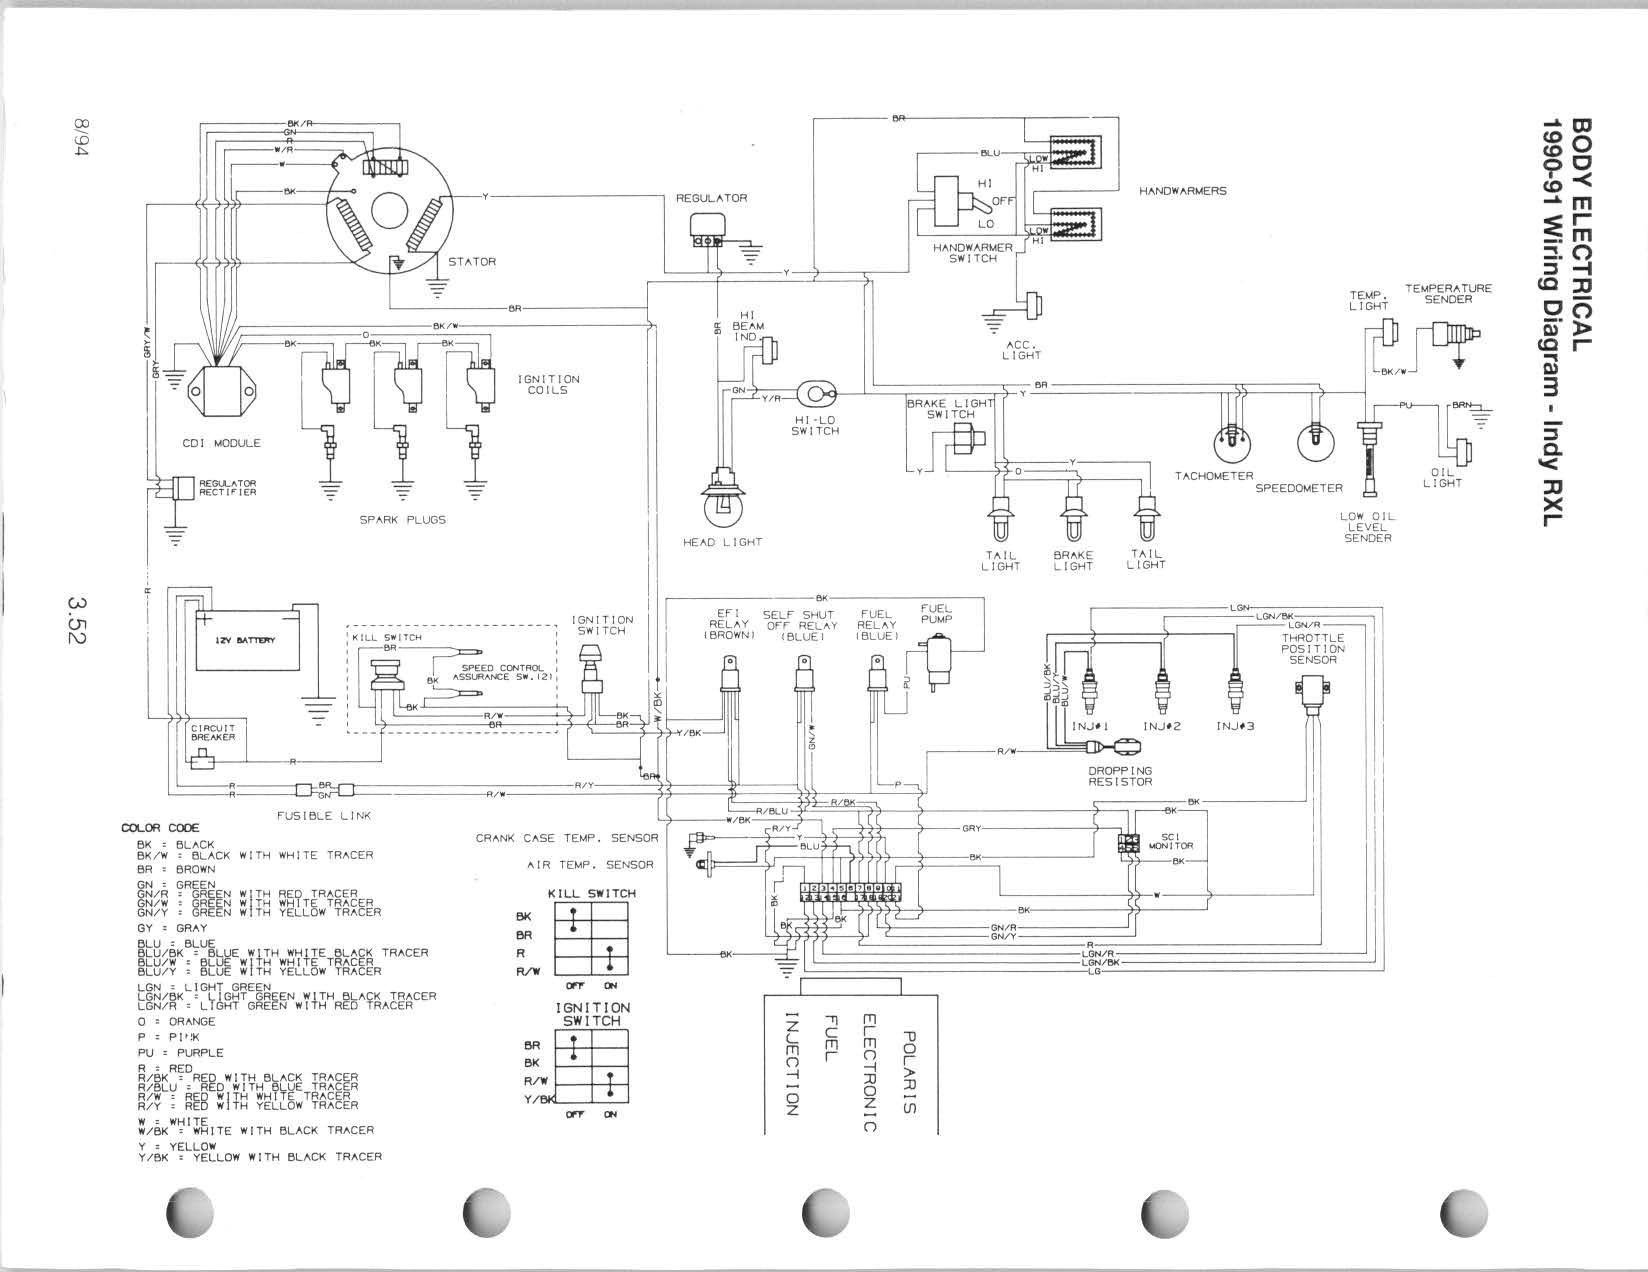 polaris ranger fuel pump wiring diagram Collection-Full Size of Wiring Diagram Wiringam Polaris Ranger Xp Picture Ideas 21 2007 Polaris 16-d